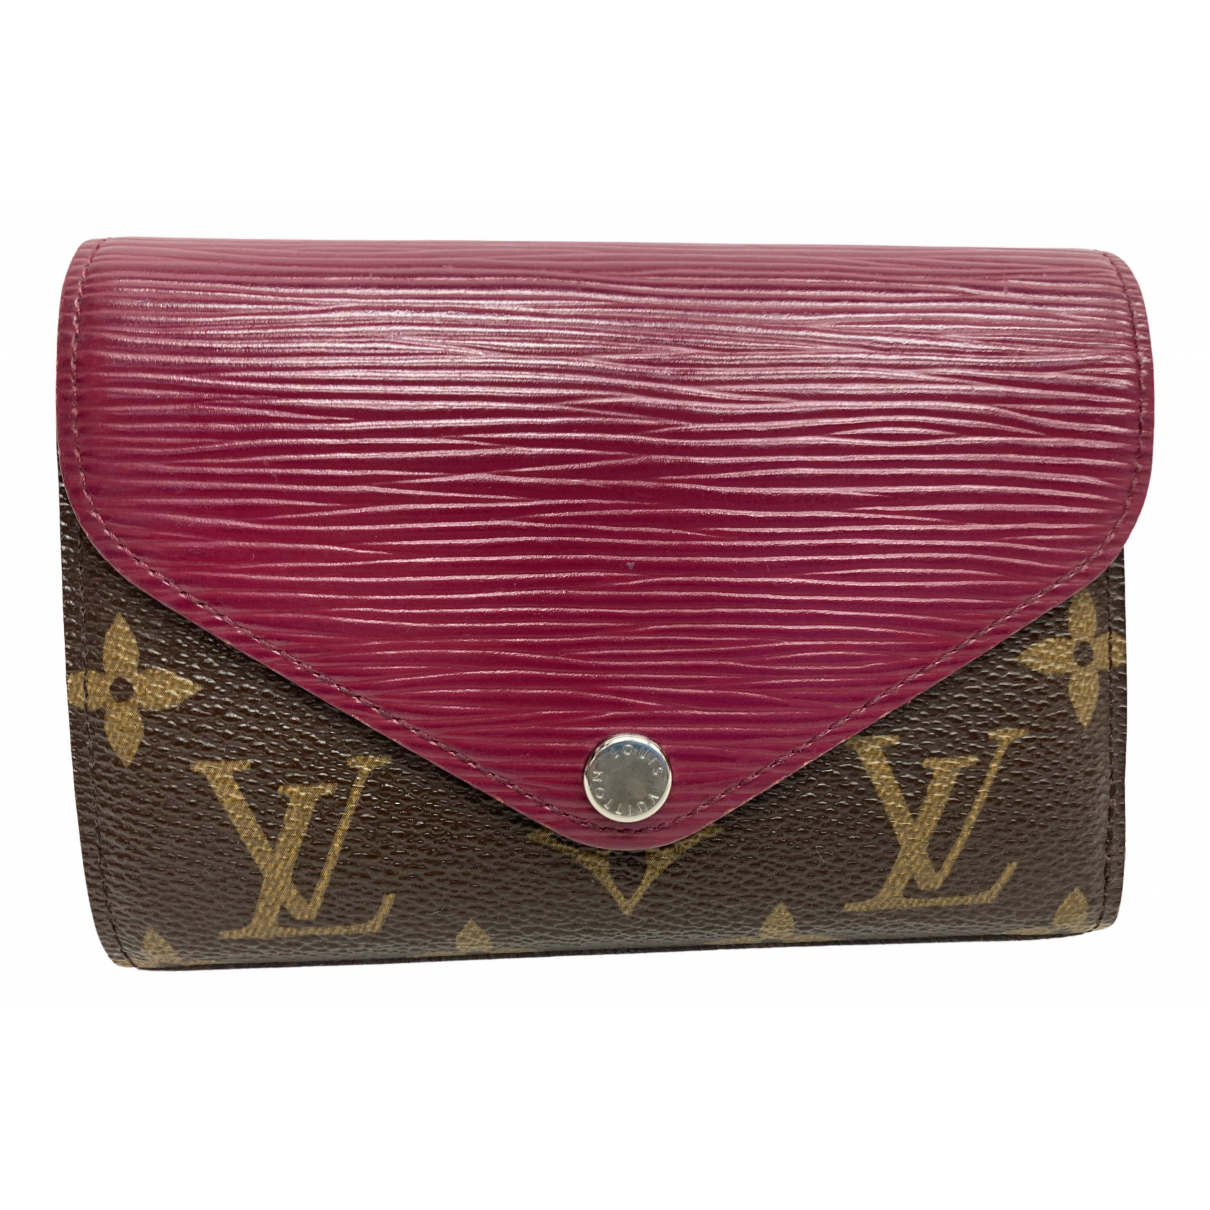 Louis Vuitton \N Portemonnaie in  Lila Leinen